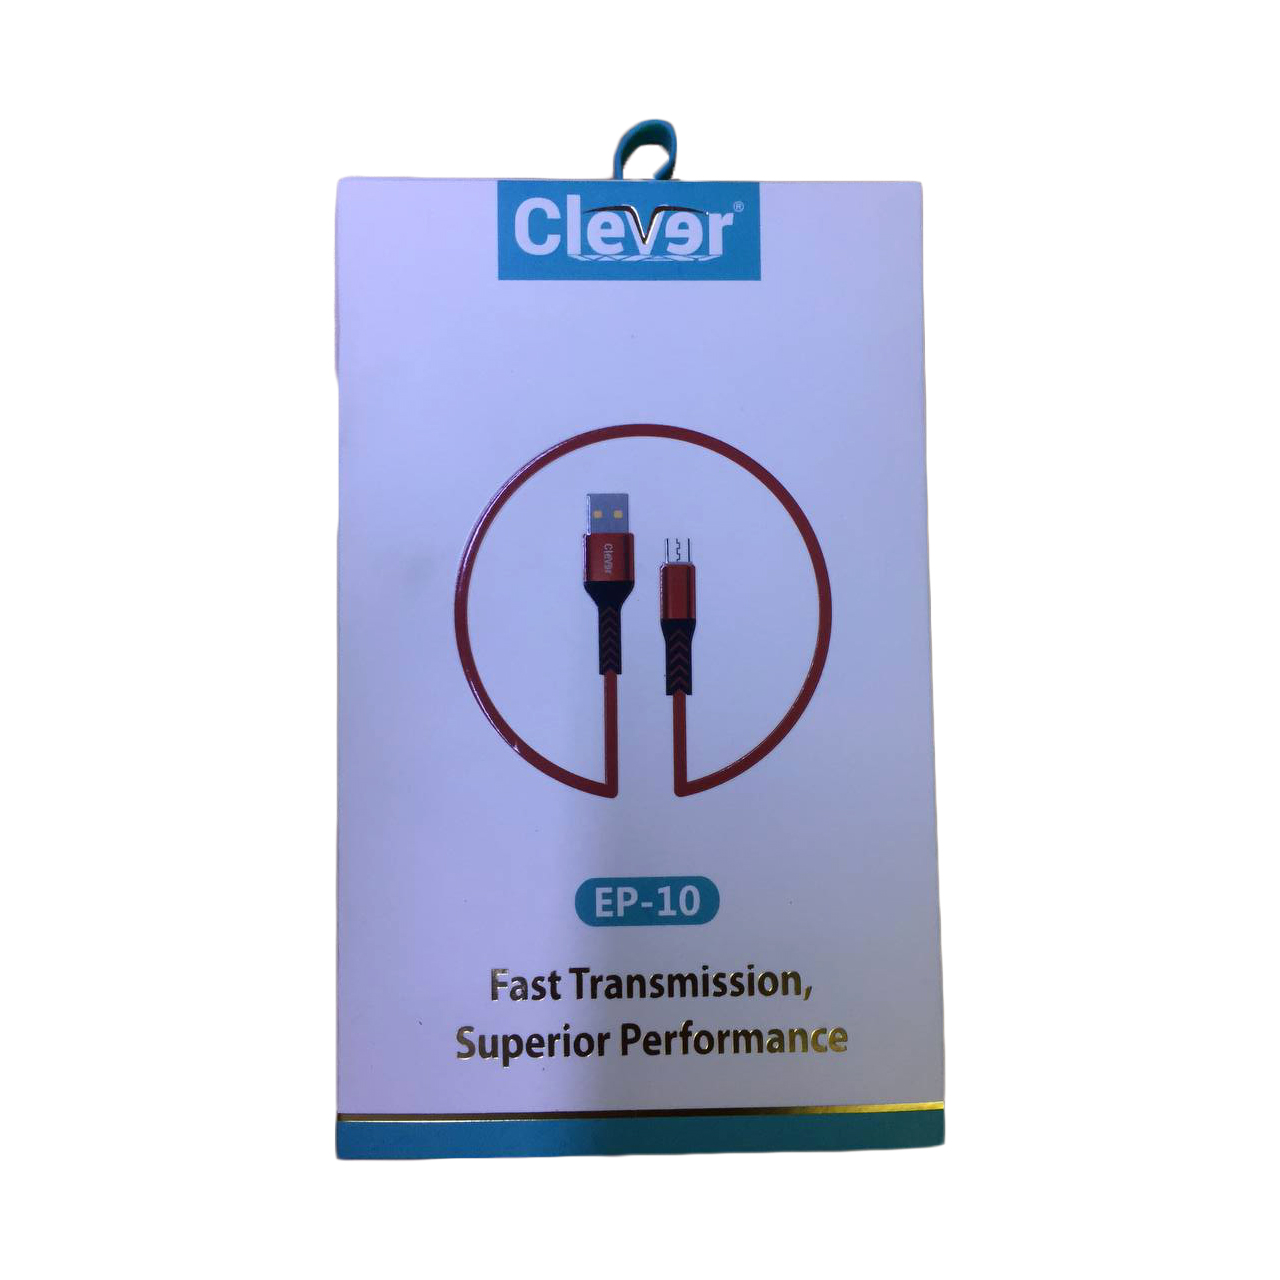 CABLE MICRO USB DATA & CHARGE FOR SMARTPHONE CLEVER 2.0A EP-10 ,Other Smartphone Acc